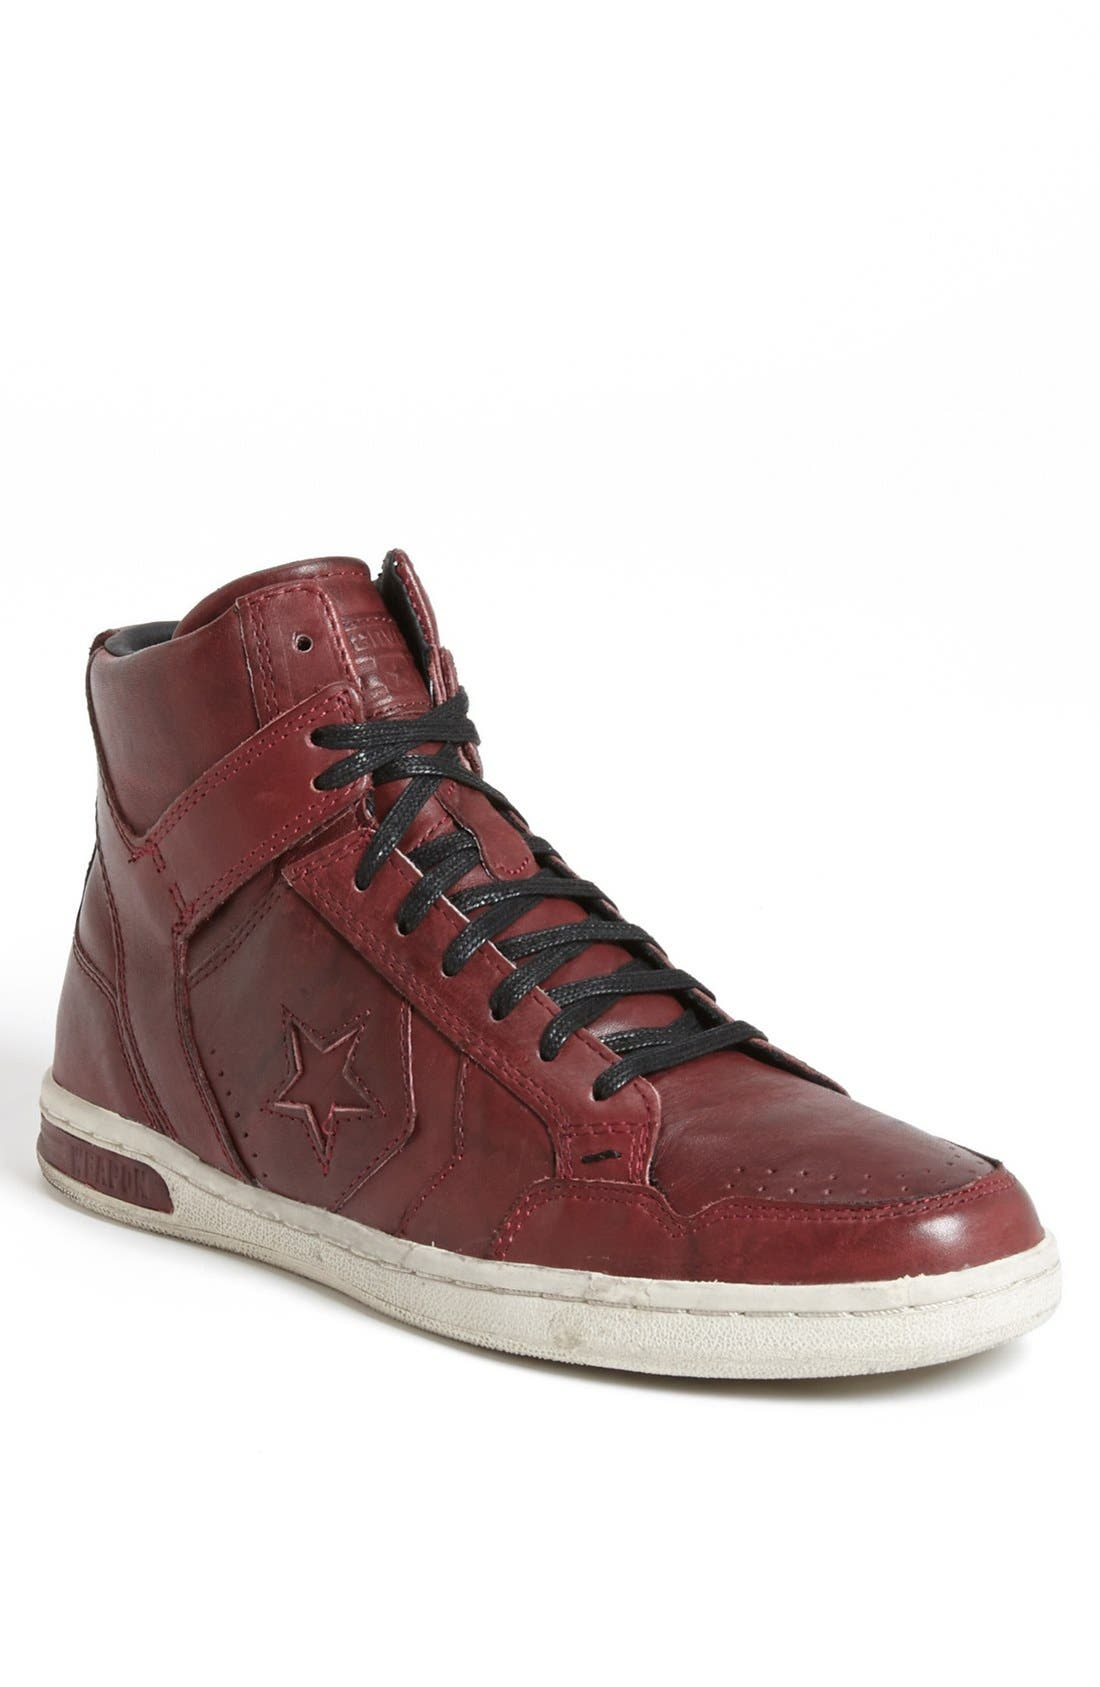 Main Image - Converse by John Varvatos 'Weapon' Sneaker (Online Only)